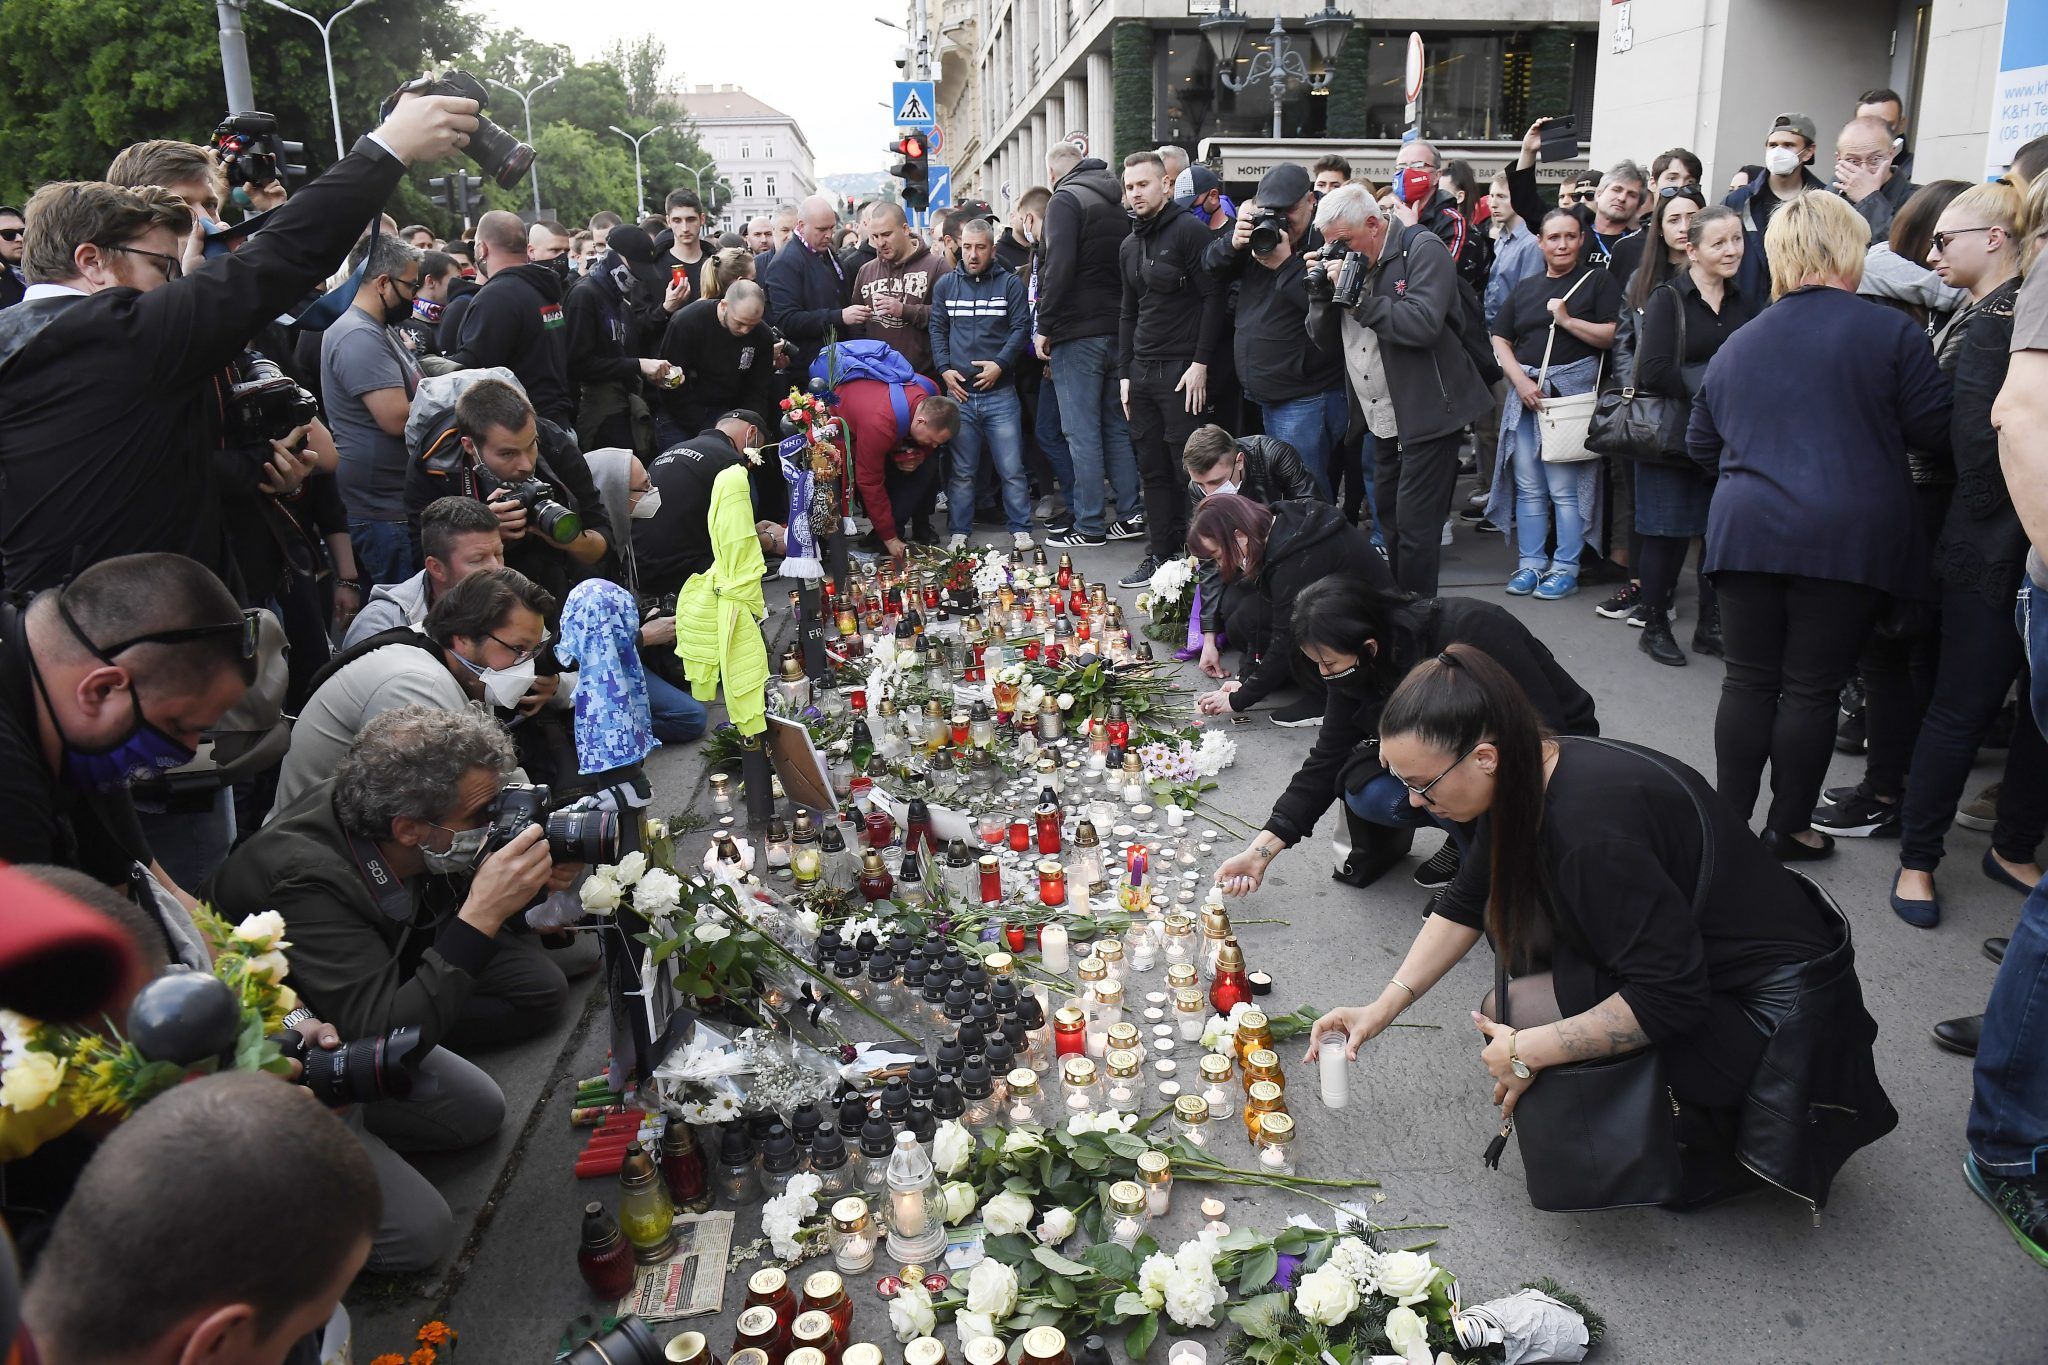 """Interior Ministry on Deák Square Stabbing: """"Memorial Gathering"""" Doesn't Fall Under the Assembly Act post's picture"""